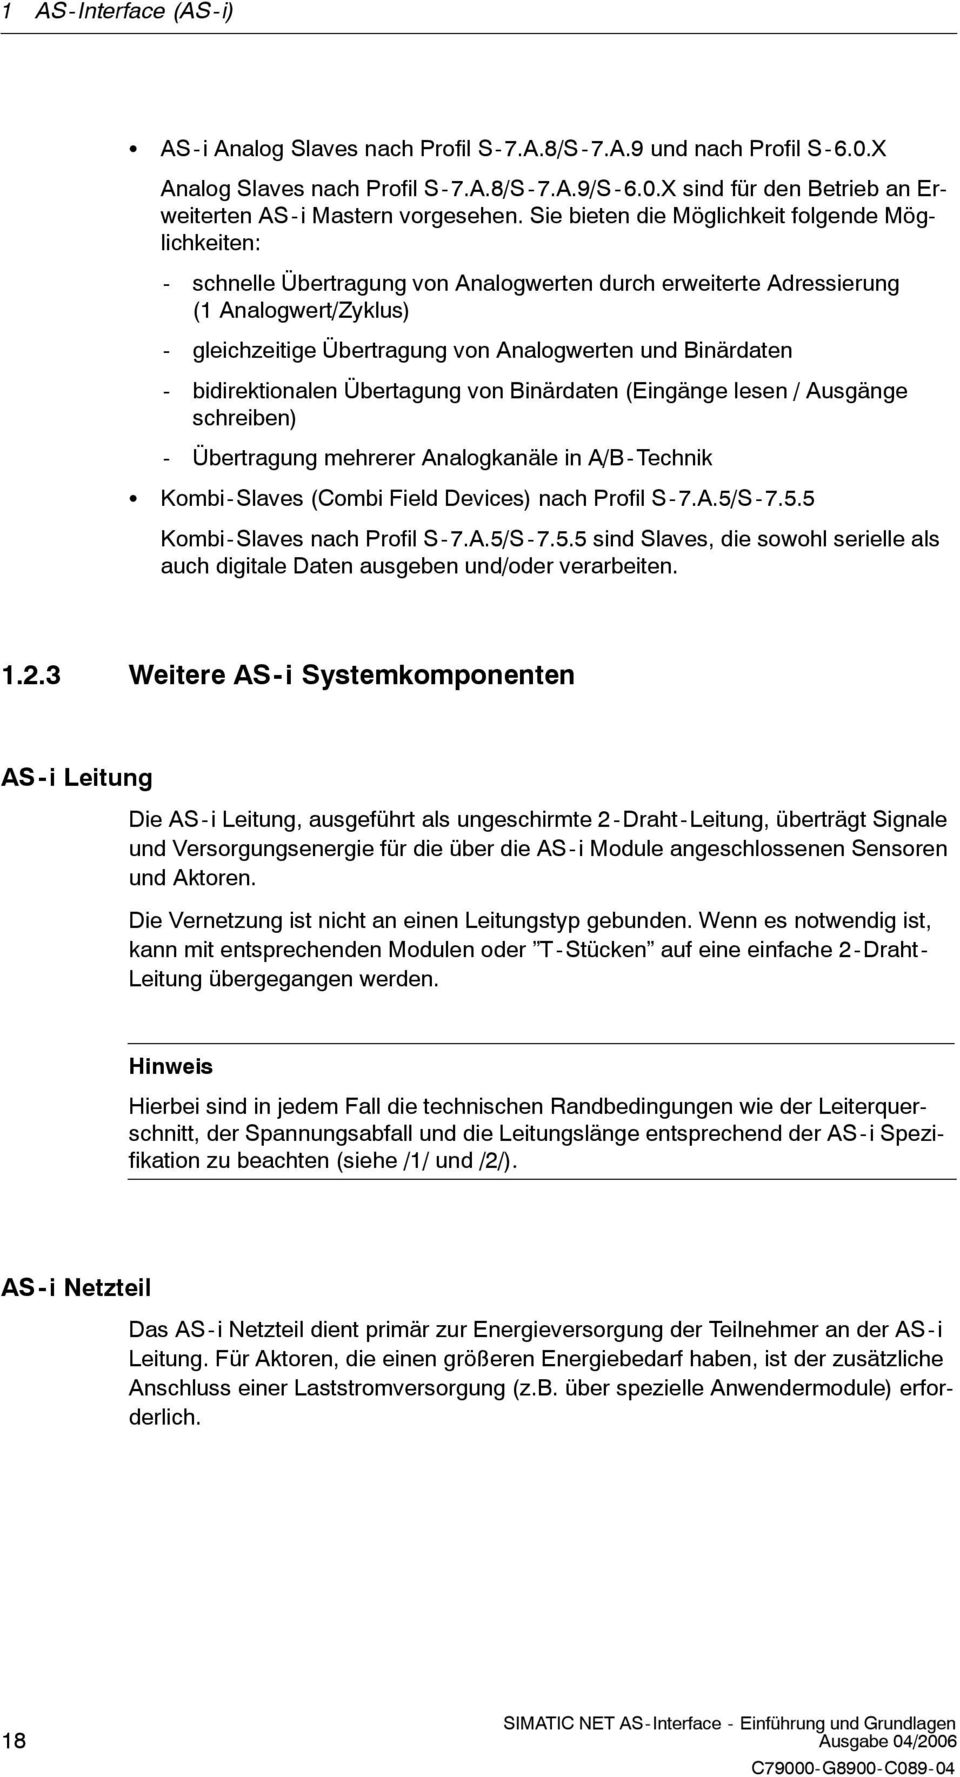 Binärdaten - bidirektionalen Übertagung von Binärdaten (Eingänge lesen / Ausgänge schreiben) - Übertragung mehrerer Analogkanäle in A/B- Technik Kombi-Slaves (Combi Field Devices) nach Profil S-7.A.5/S -7.